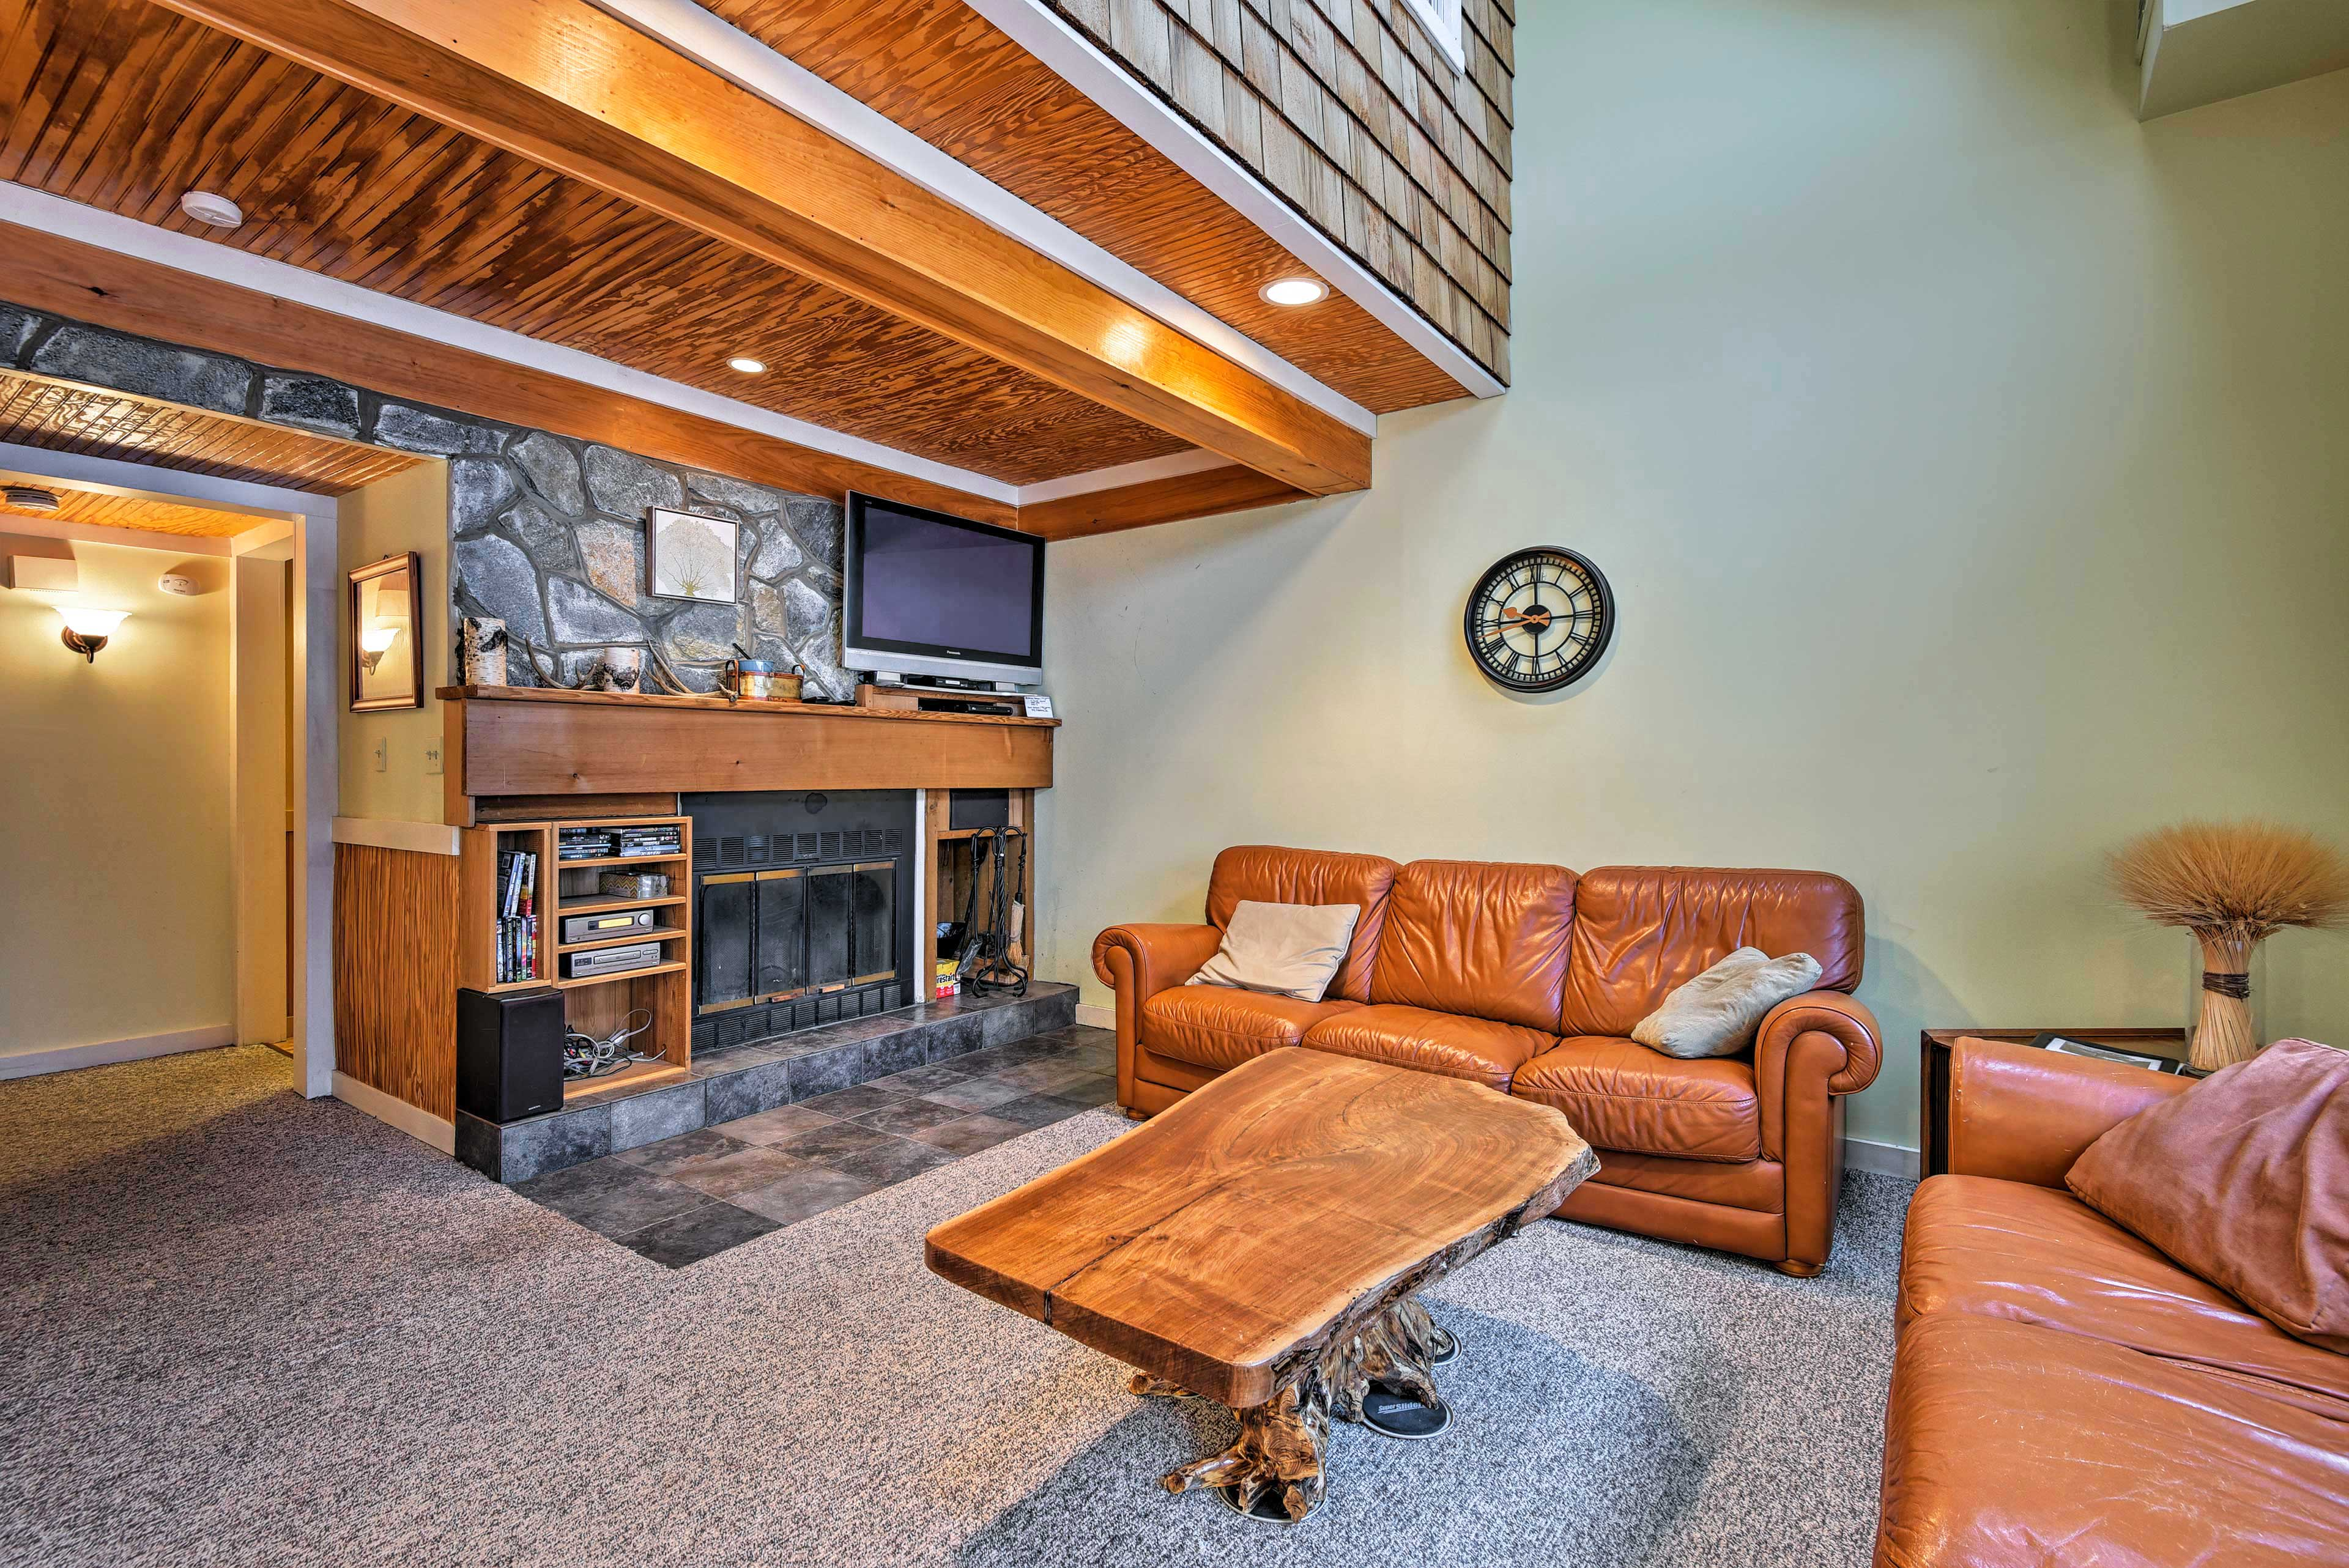 A flat-screen cable TV and wood-burning fireplace adorn the living room.